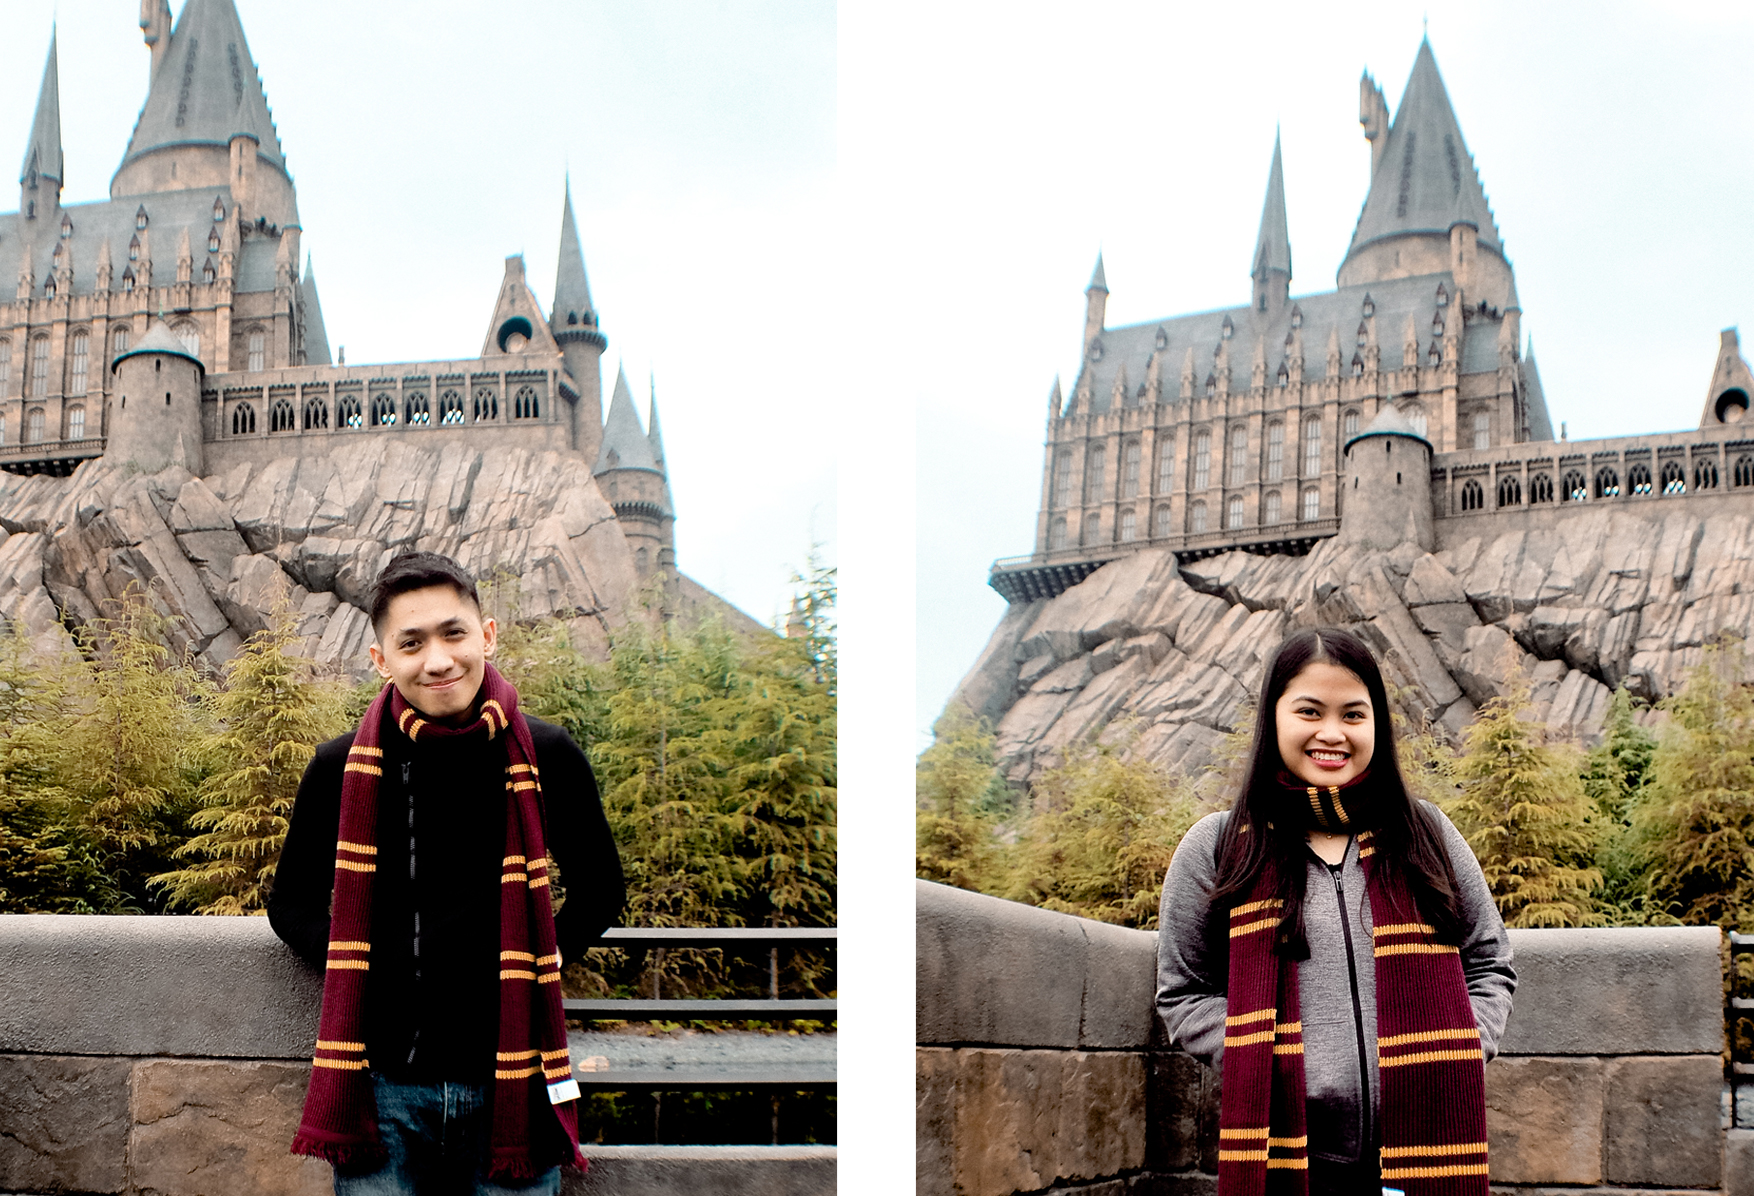 Of course, we had our photo with Hogwarts Castle as our backdrop!